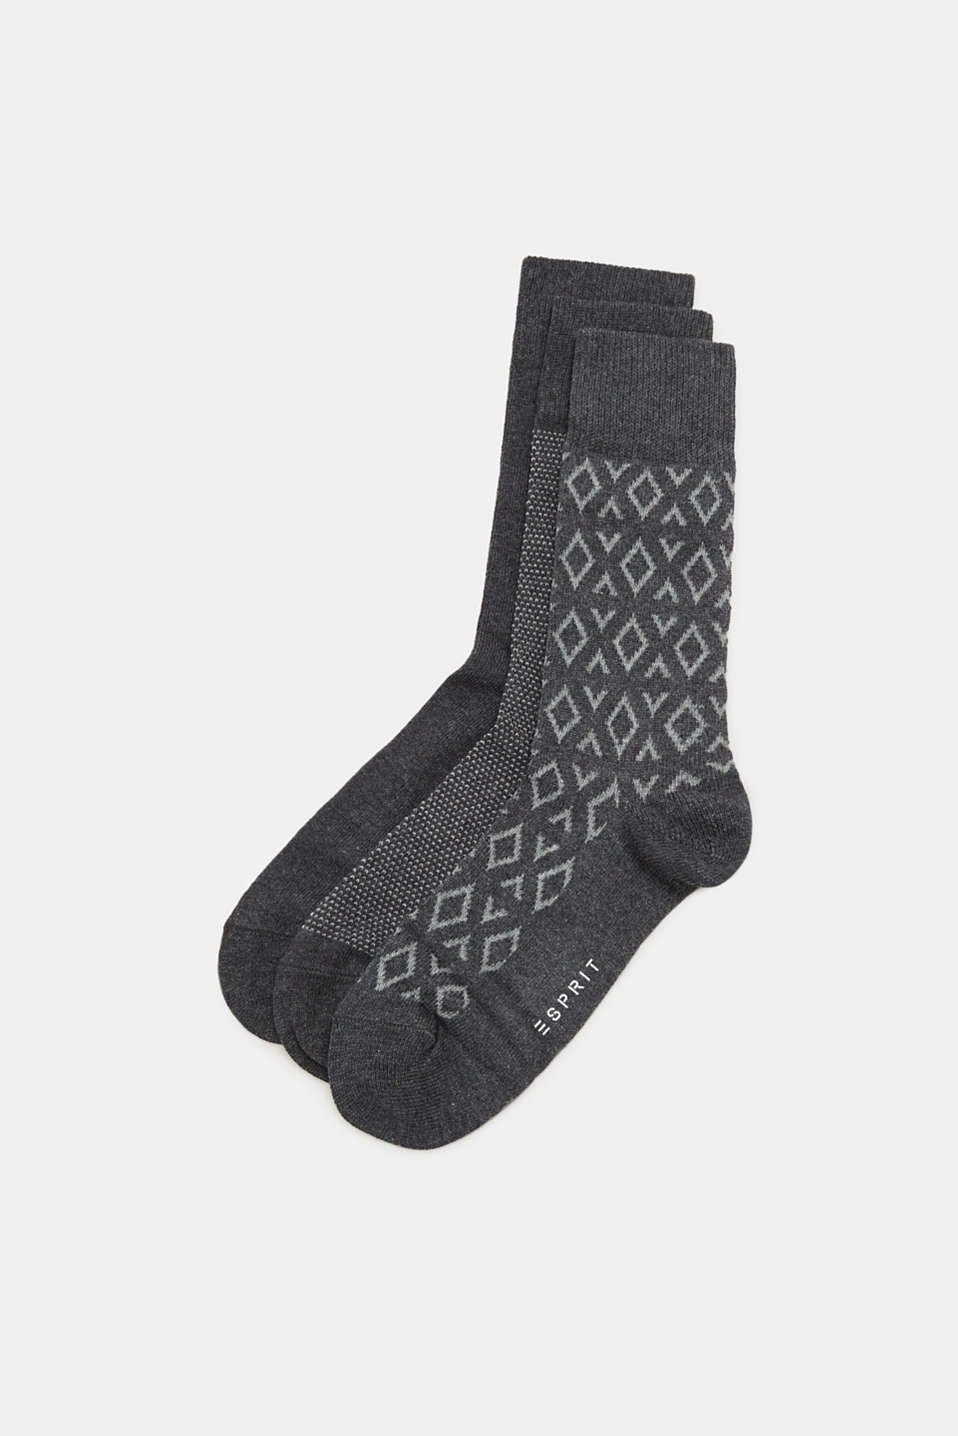 Esprit - Triple pack of socks in a gift box